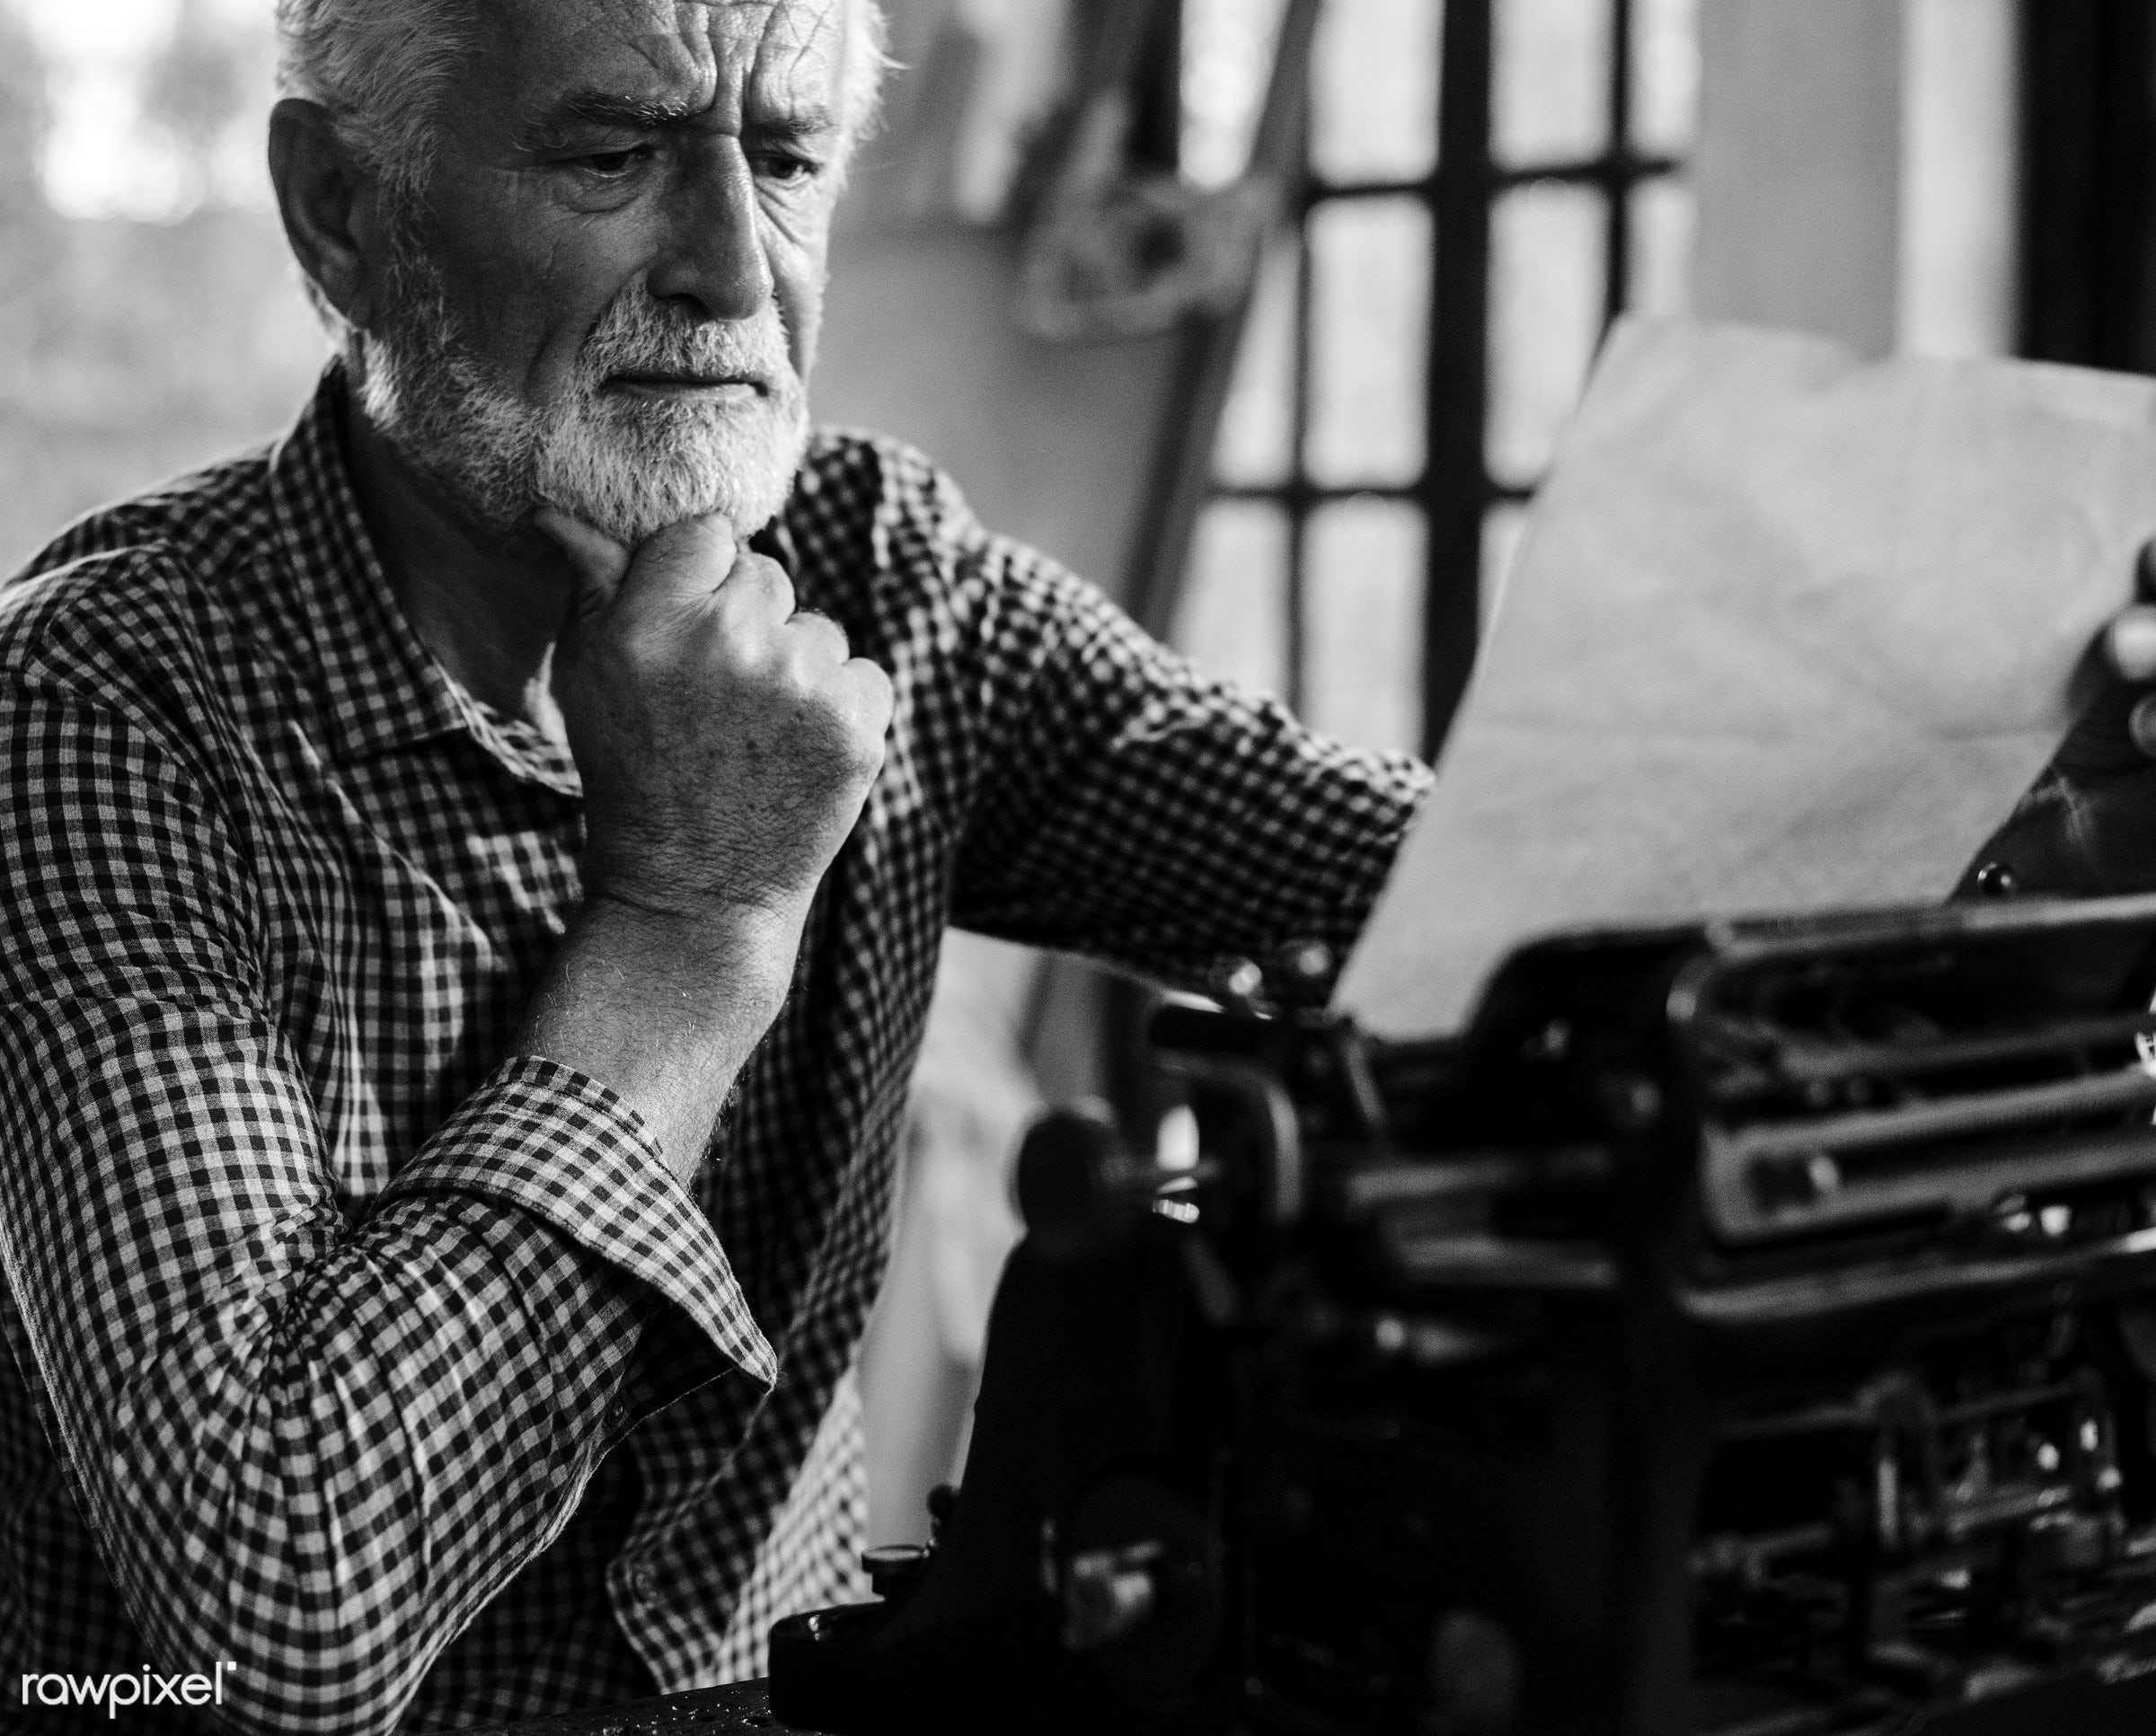 paper, tool, old school, retro, type, caucasian, style, typewriter, writer, journalist, man, vintage, grayscale, thoughtful...